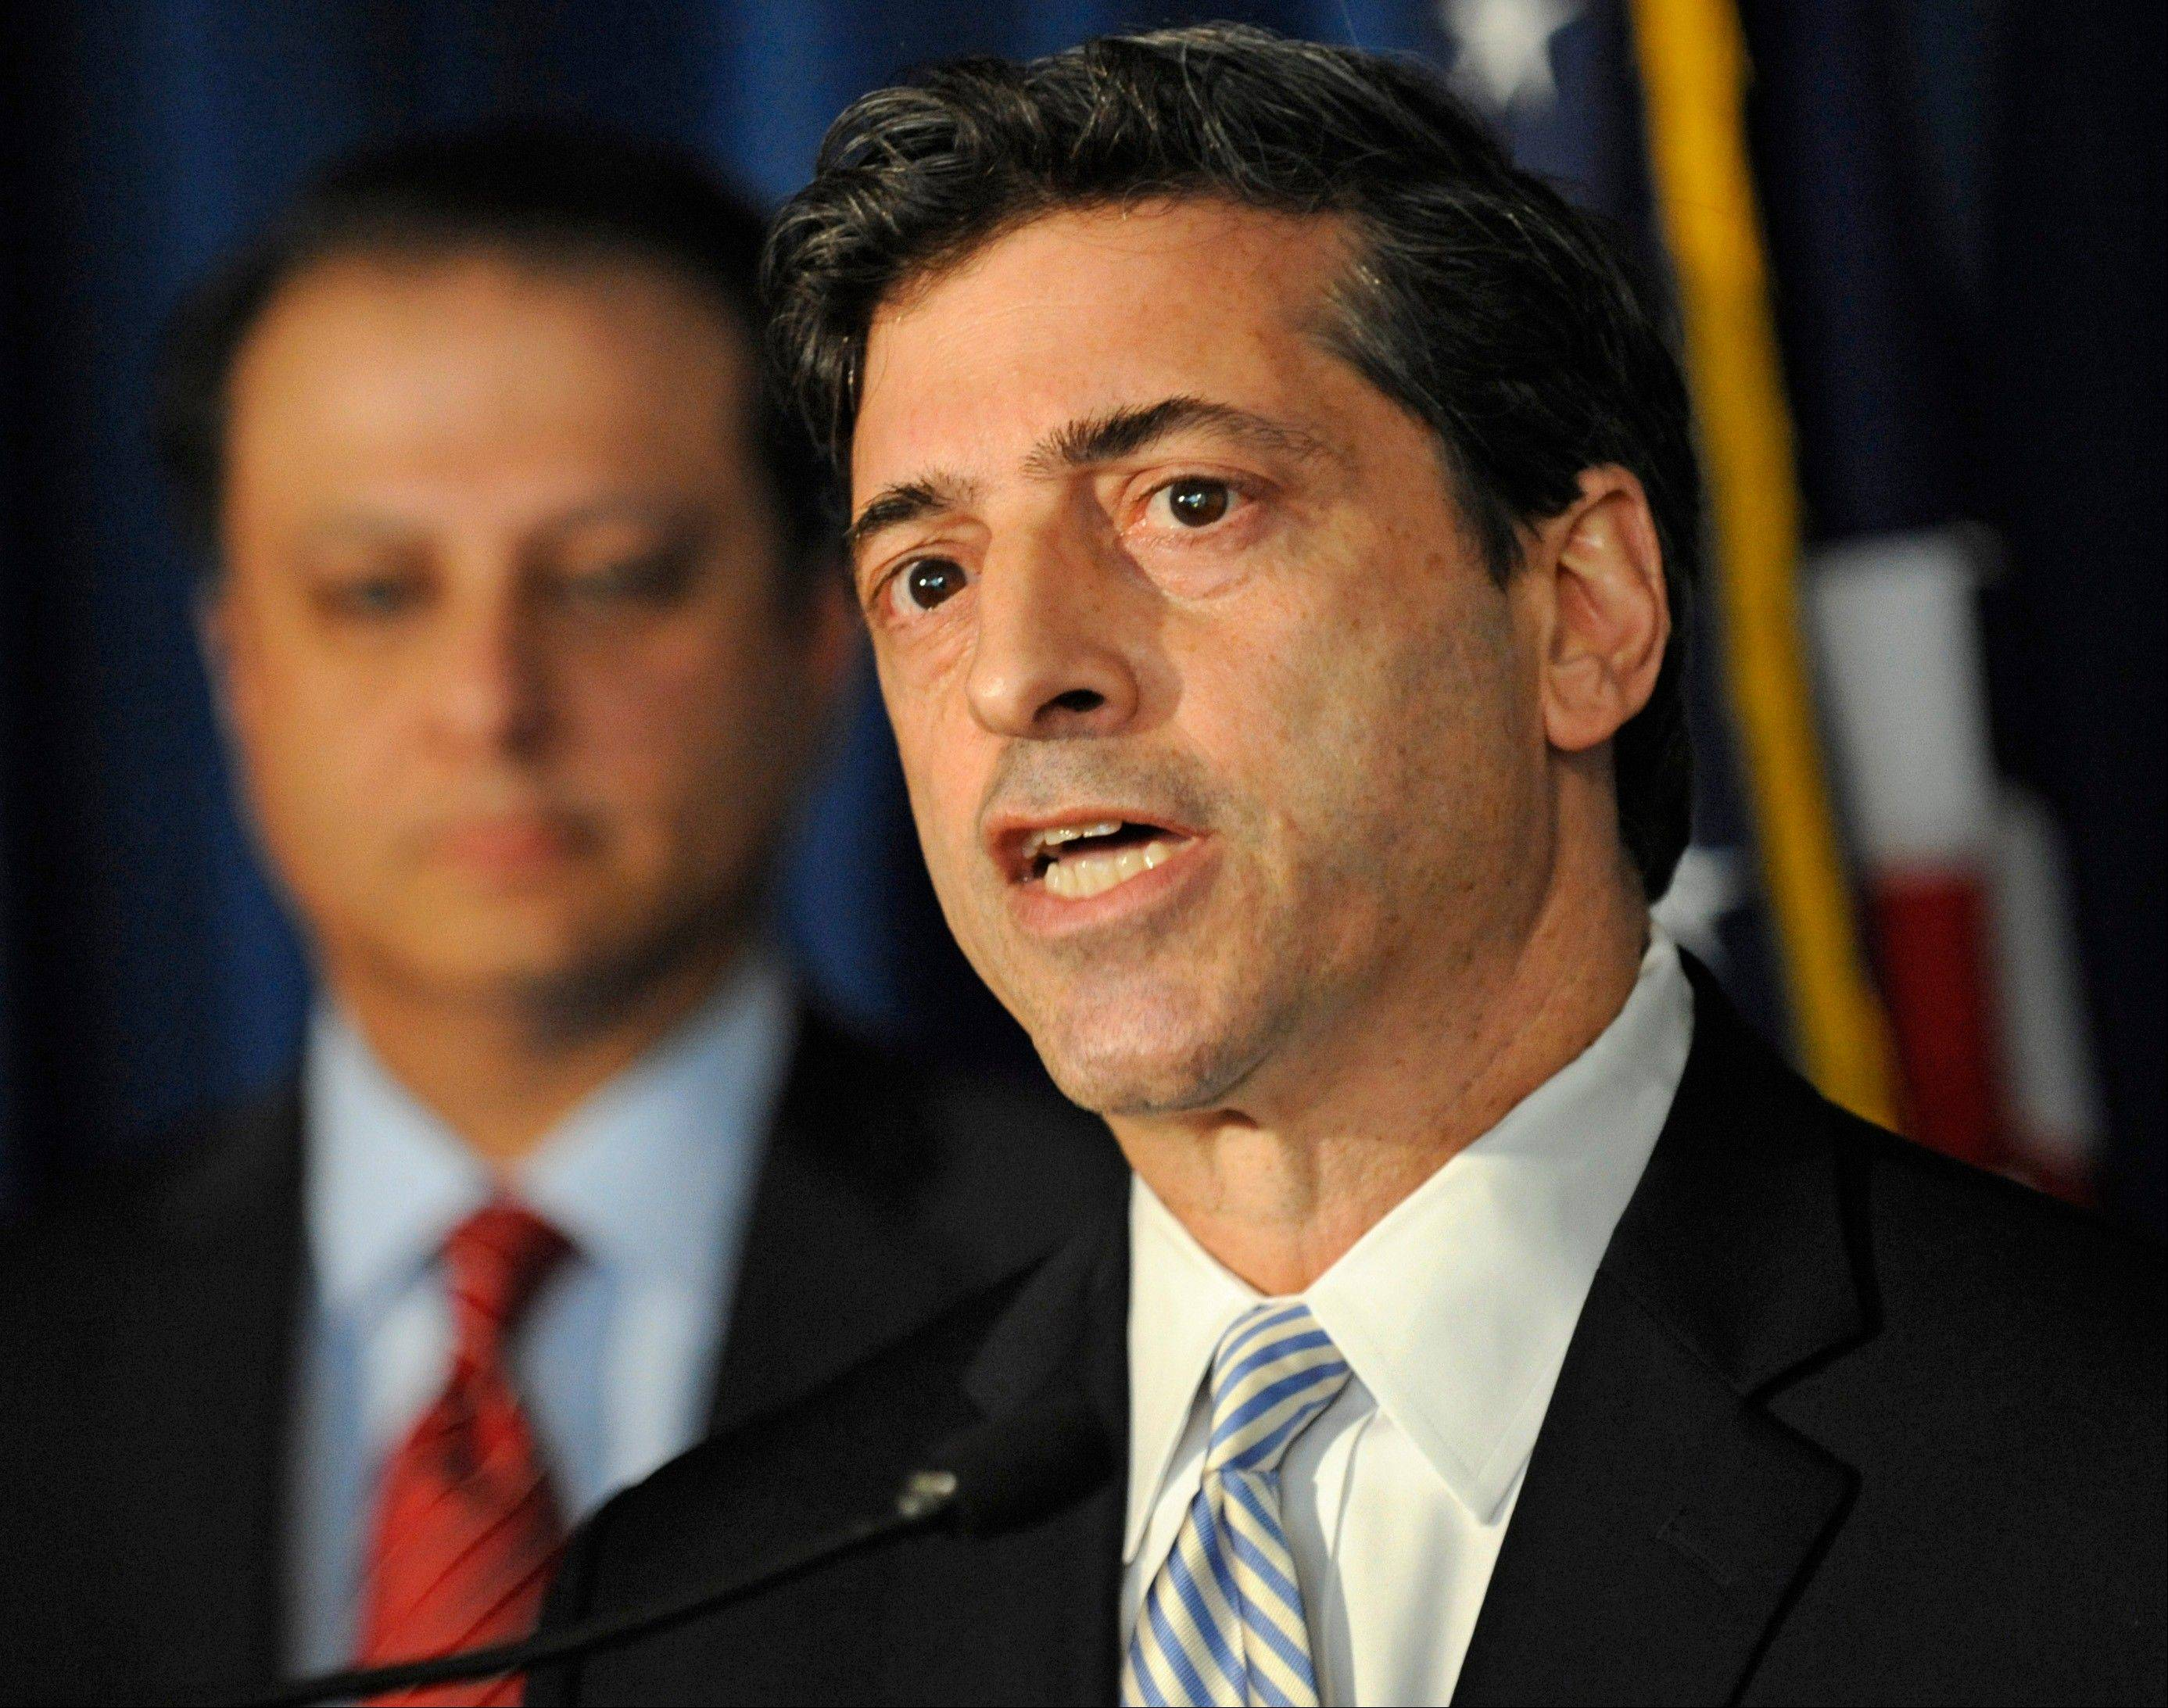 U. S. Attorney for the Southern district of N.Y. Preet Bharara, left, looks on as Robert Khuzami, director of the SEC division of enforcement speaks at a news conference, Tuesday Mathew Martoma, a former hedge fund portfolio manager was arrested Tuesday on charges that he helped carry out the most lucrative insider trading scheme in U.S. history, nabling investment advisers and their hedge funds to make more than $276 million in illegal profits.